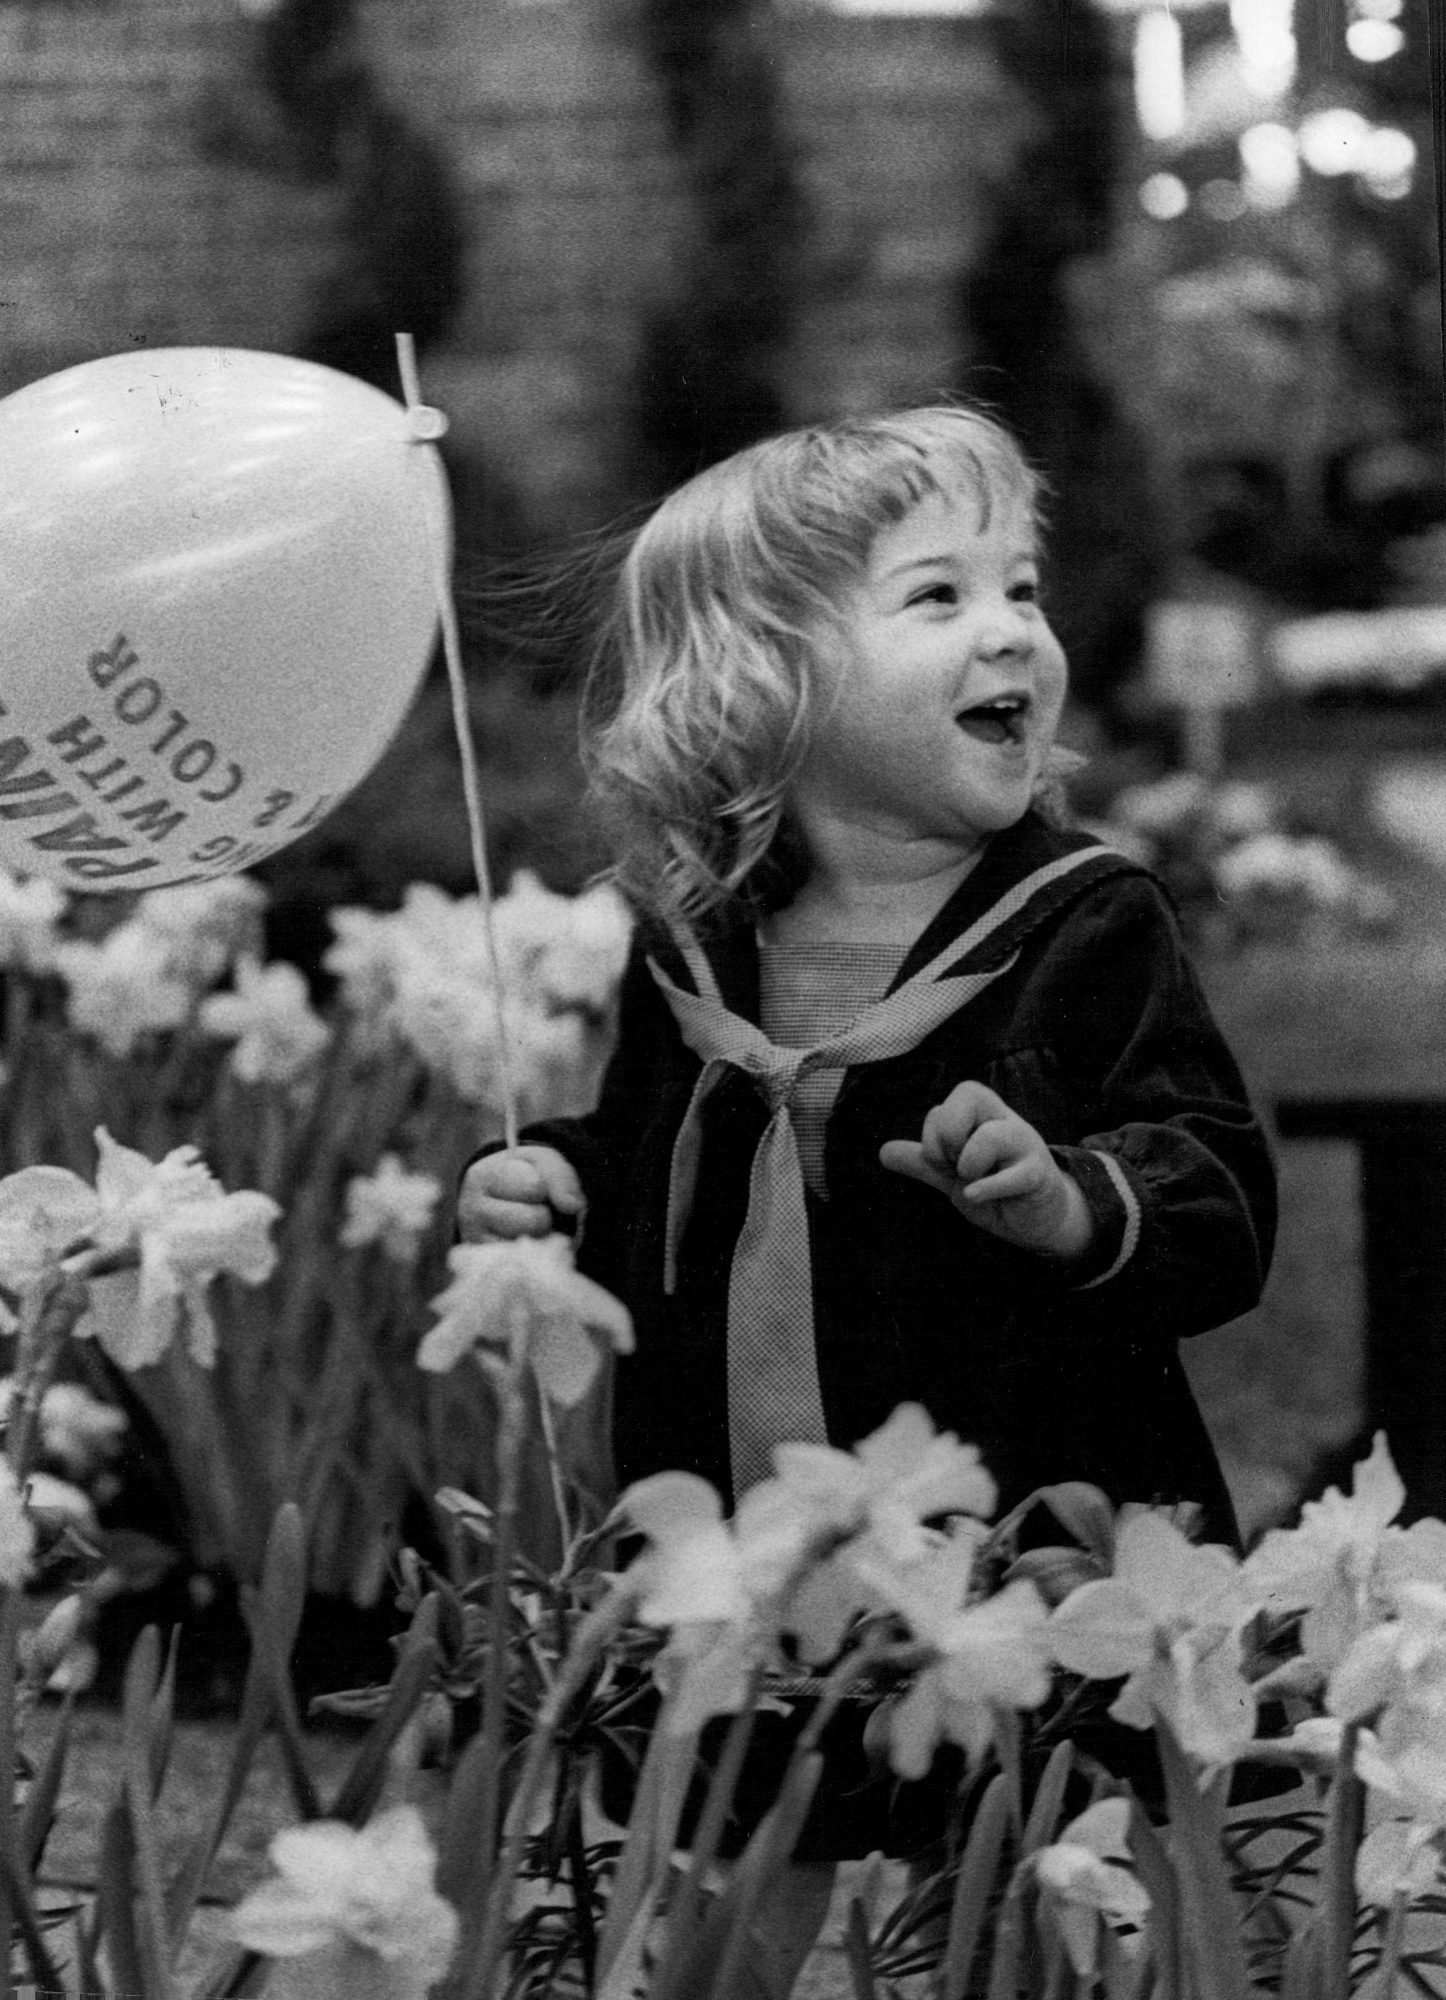 Baby Playing in Flowers with Balloon